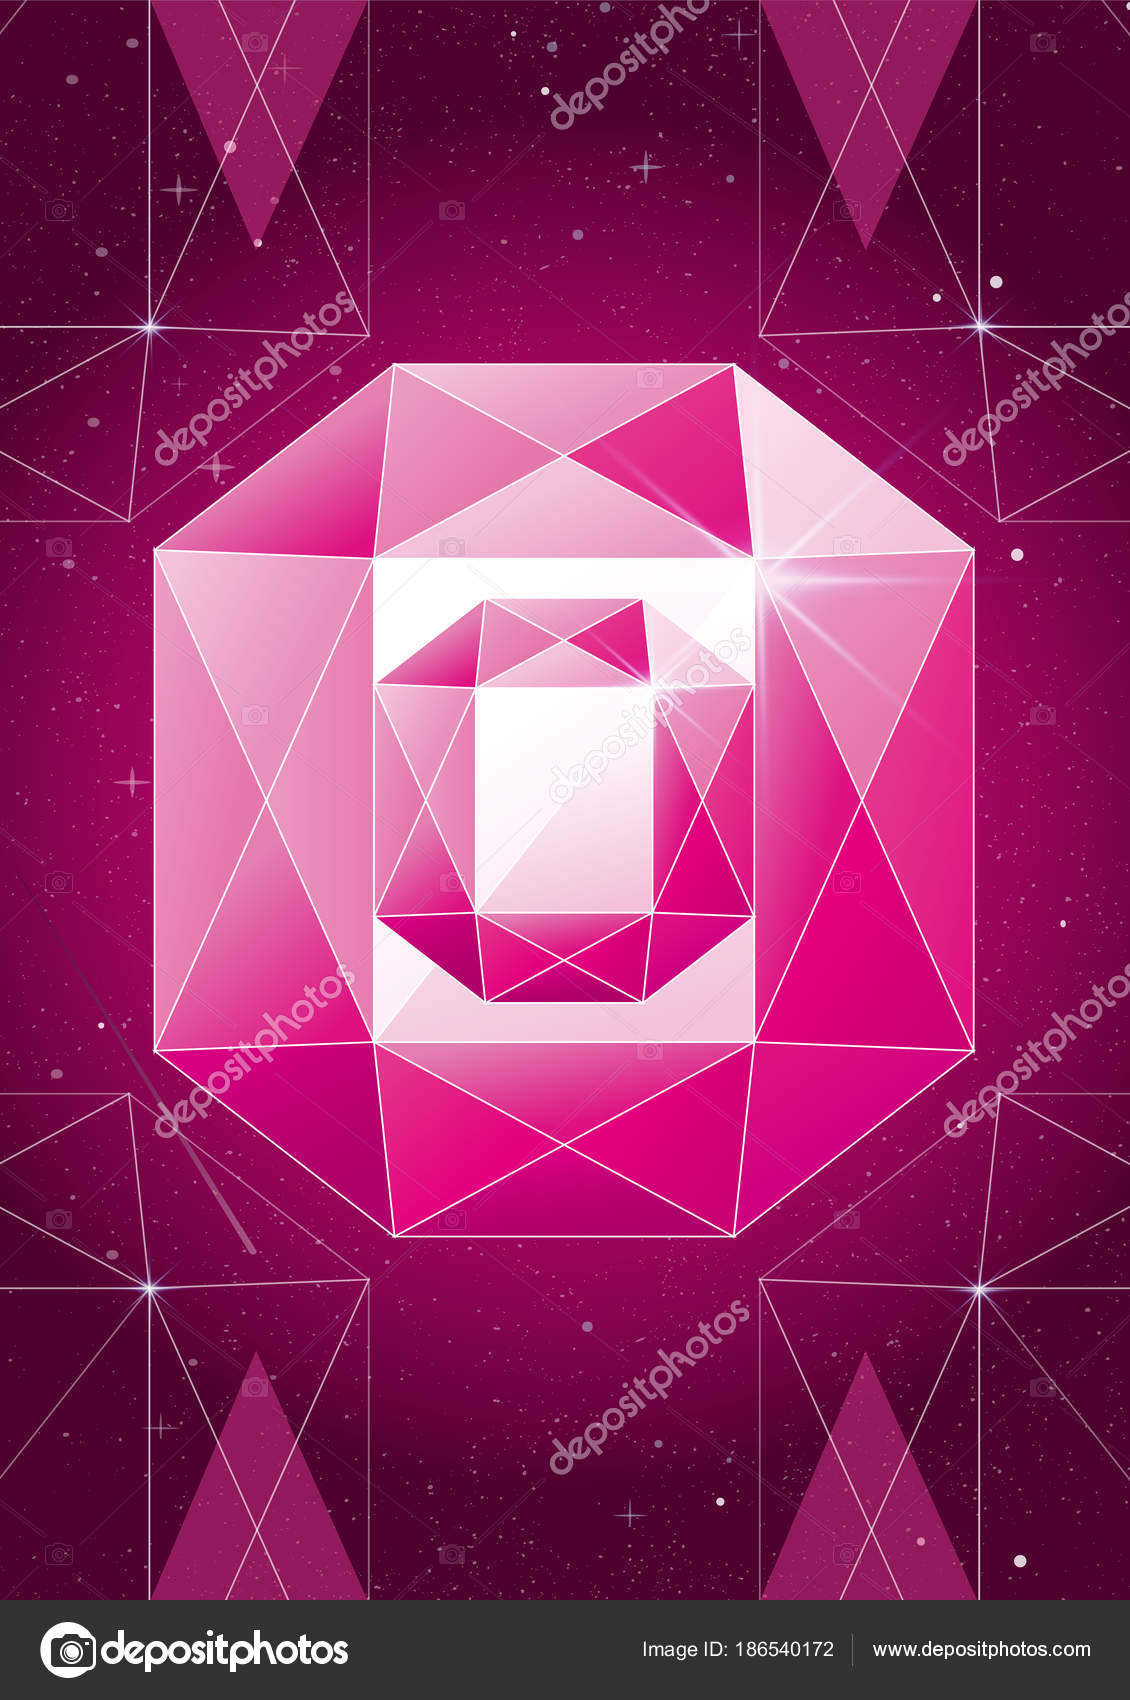 low polygonal polygon download kiss vector preview hand lo shape painted diamond logo